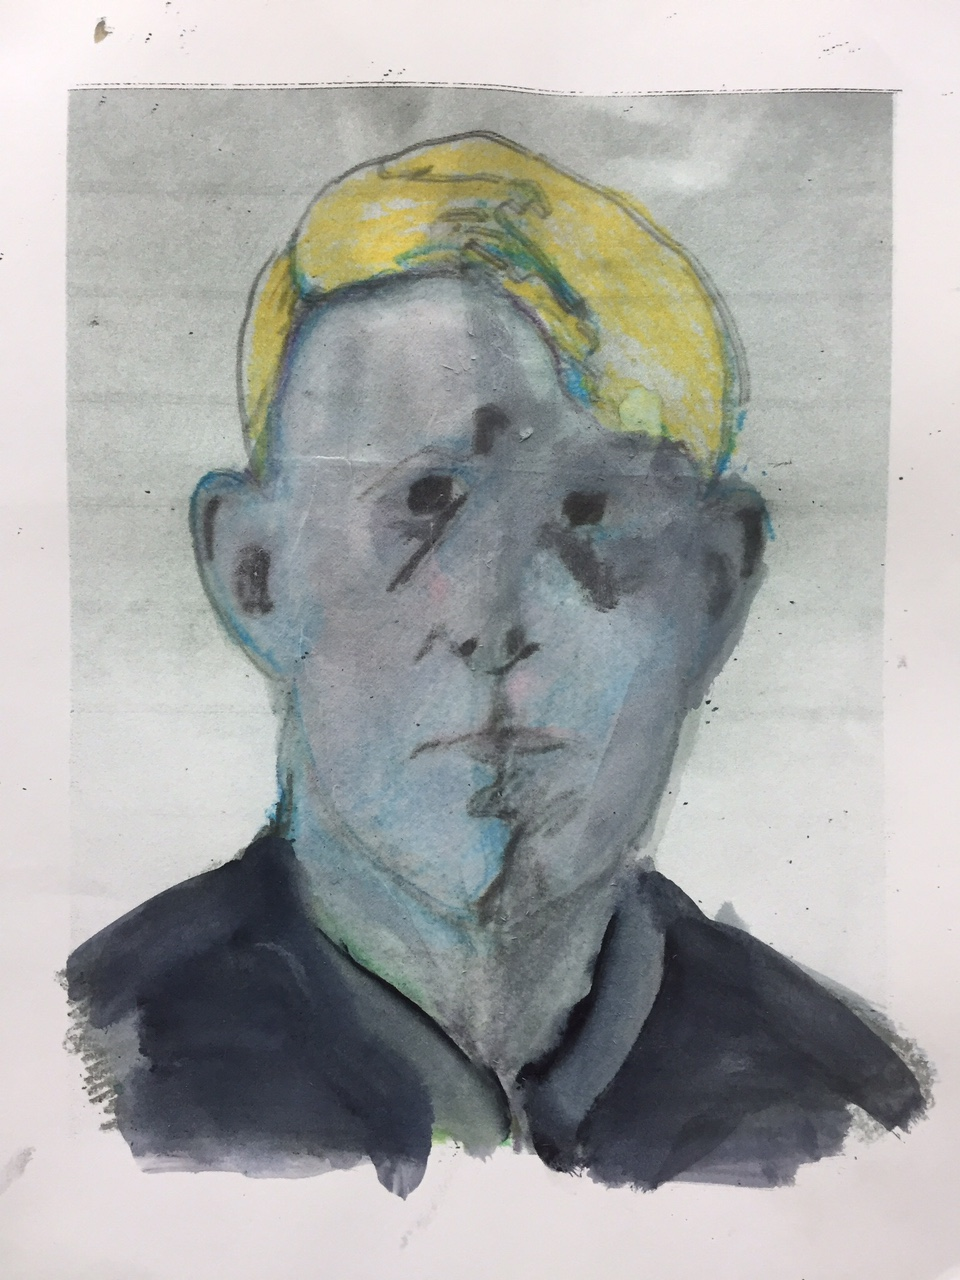 """Second part, portrait (study) of a young man, c. 1920. 2014. Acrylic, watercolor marker and graphite on paper. 12""""x8"""""""